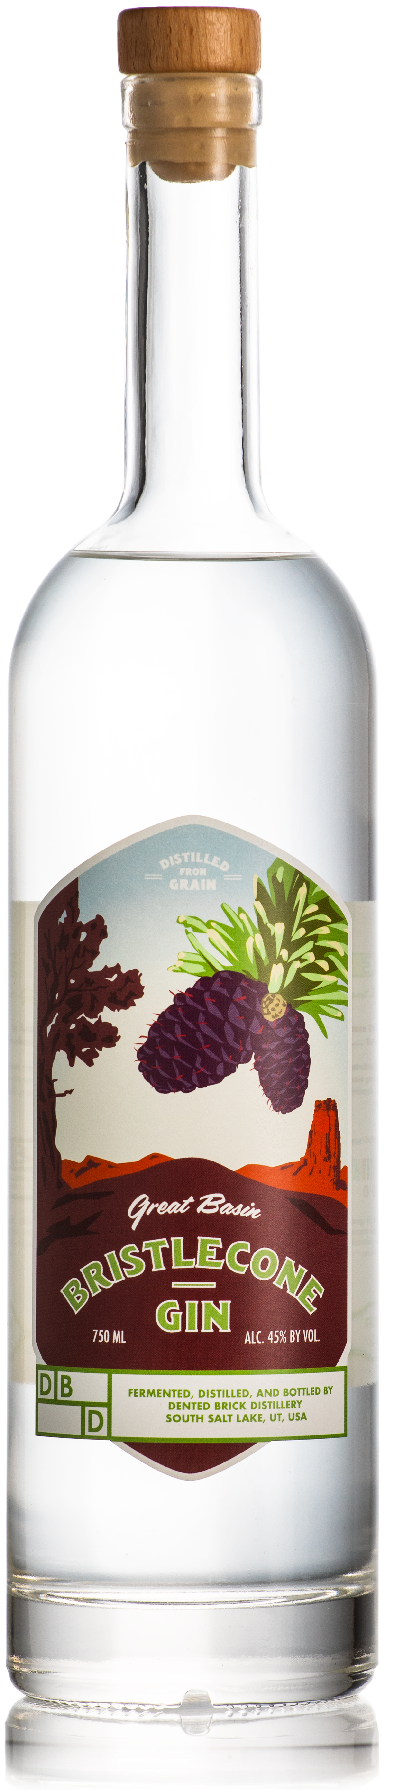 Great Basin Bristle Cone Gin by Dented Brick®